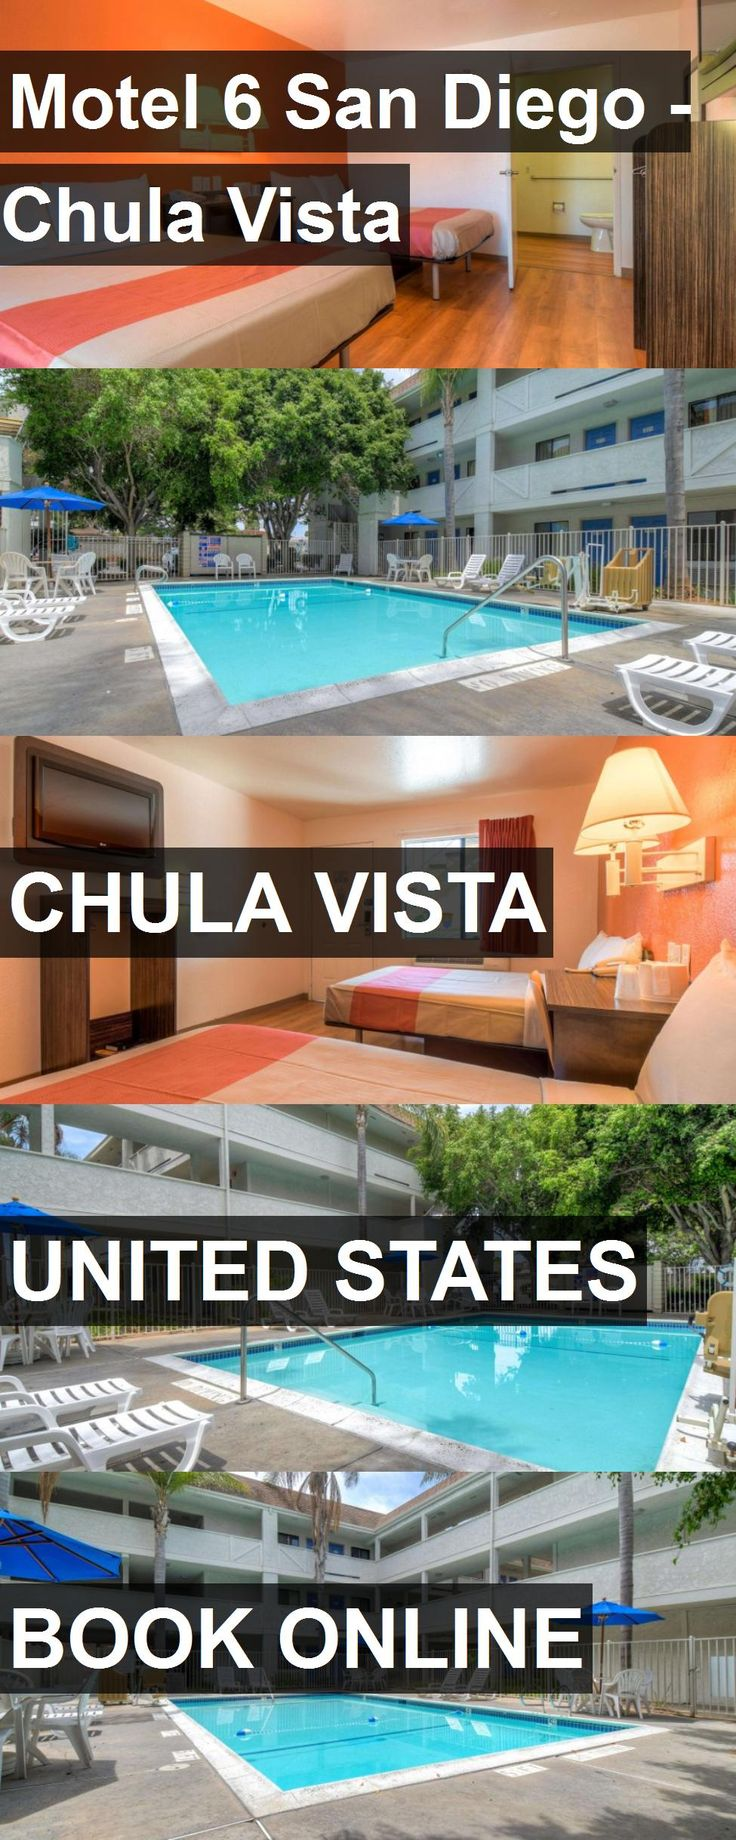 Hotel Motel 6 San Diego - Chula Vista in Chula Vista, United States. For more information, photos, reviews and best prices please follow the link. #UnitedStates #ChulaVista #Motel6SanDiego-ChulaVista #hotel #travel #vacation